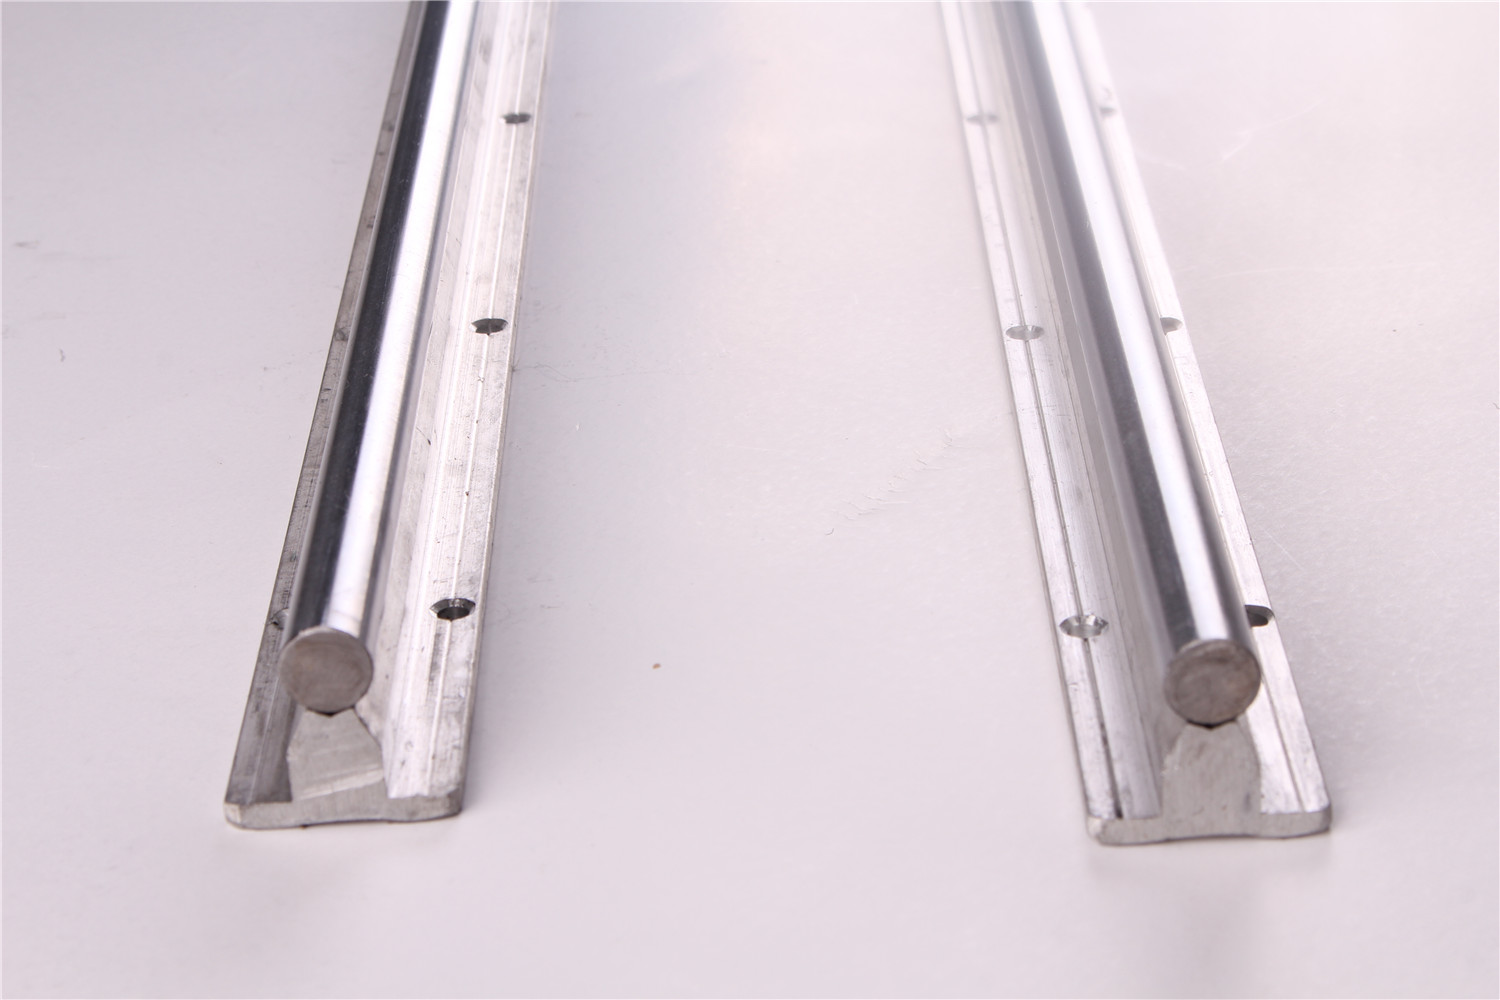 2pcs bearing linear supported rail sbr25mm - 500mm 800mm 1000mm 1200mm 1500mm linear guide rail shaft rod CNC rounter2pcs bearing linear supported rail sbr25mm - 500mm 800mm 1000mm 1200mm 1500mm linear guide rail shaft rod CNC rounter